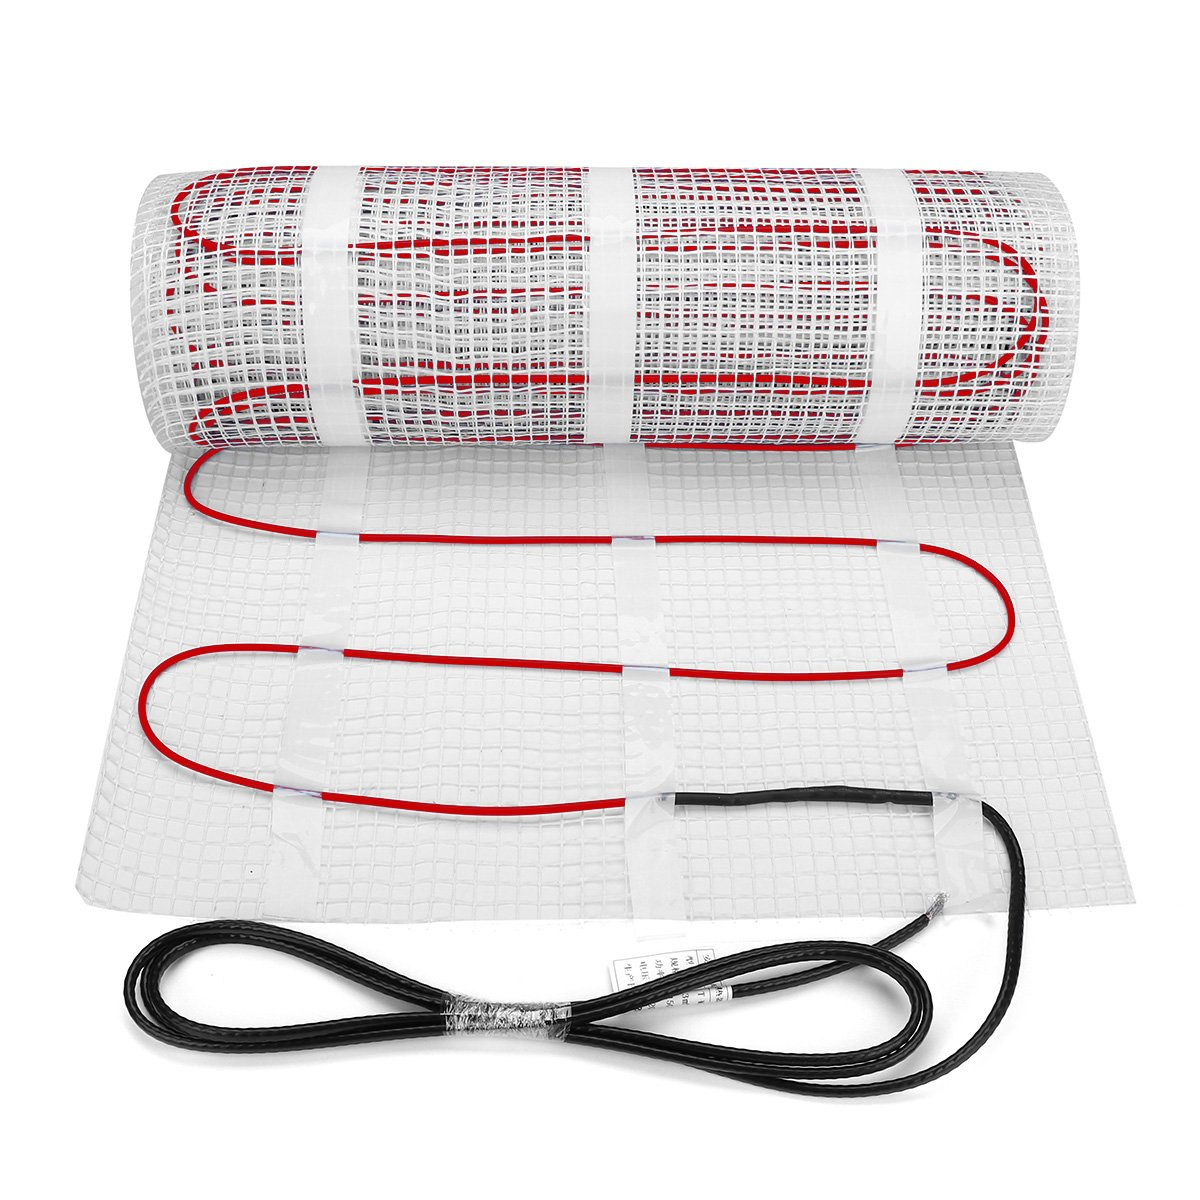 50 sqft SENPHUS 120V Electric Radiant Underfloor Heating System Warm In Tiles Cable Self-adhesive Mat by Senphus (Image #1)